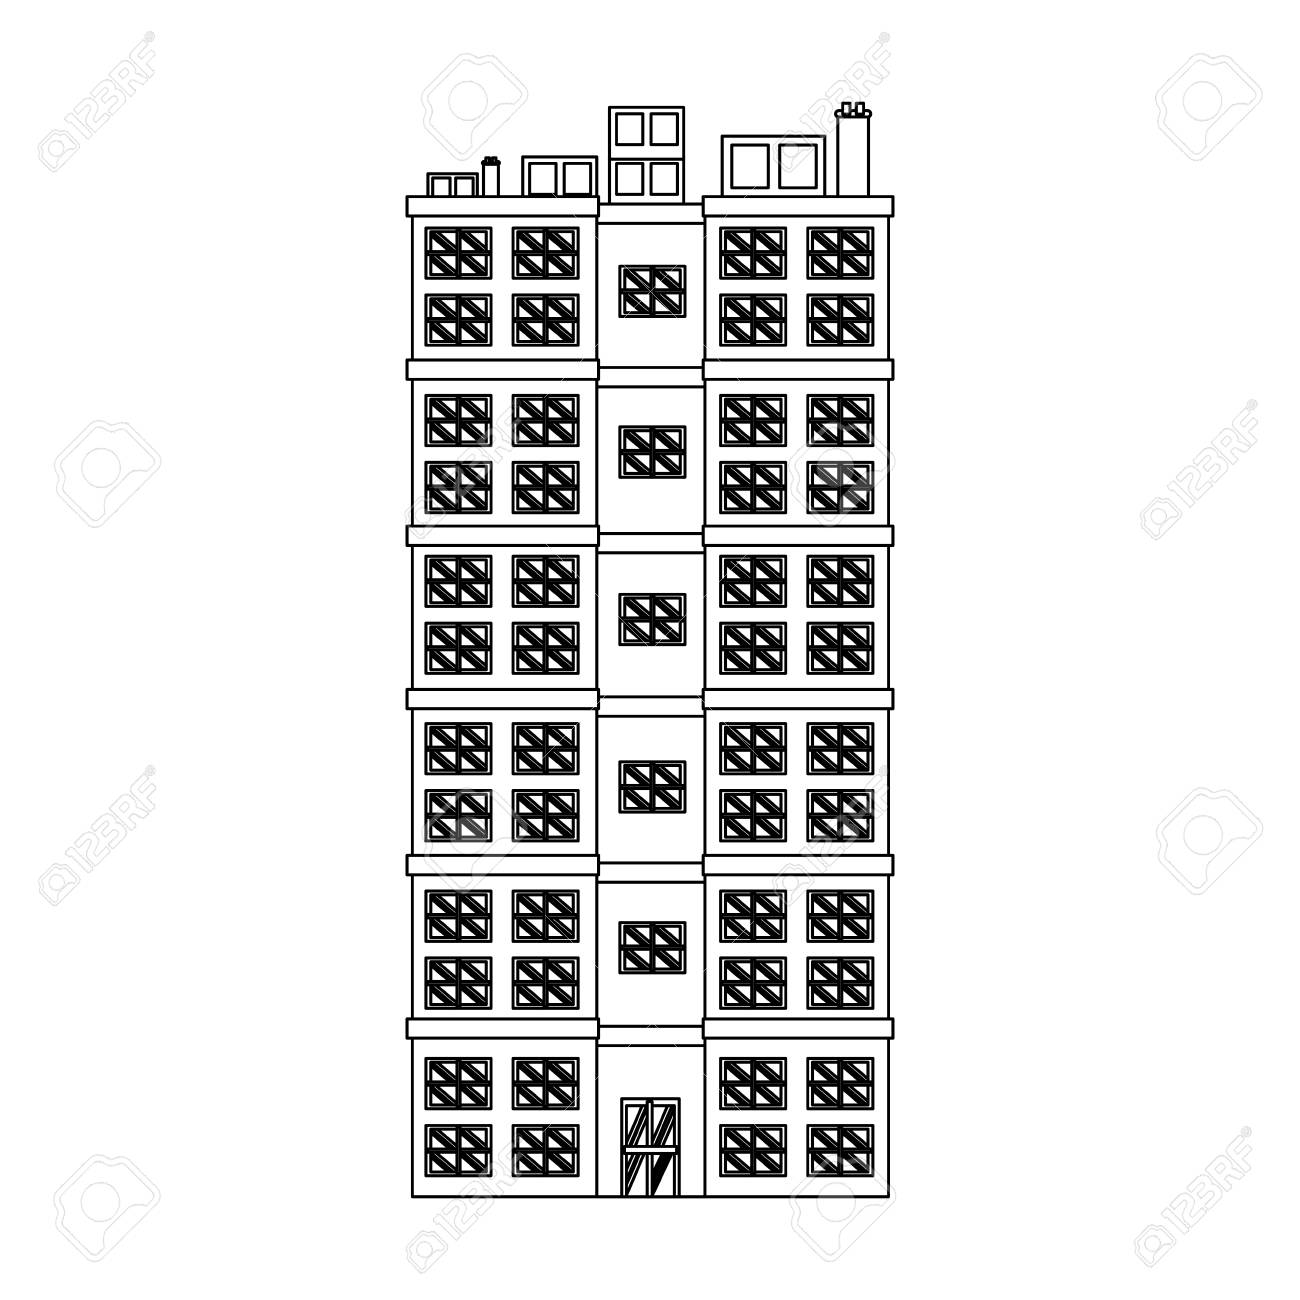 building residential apartment structure image outline vector...